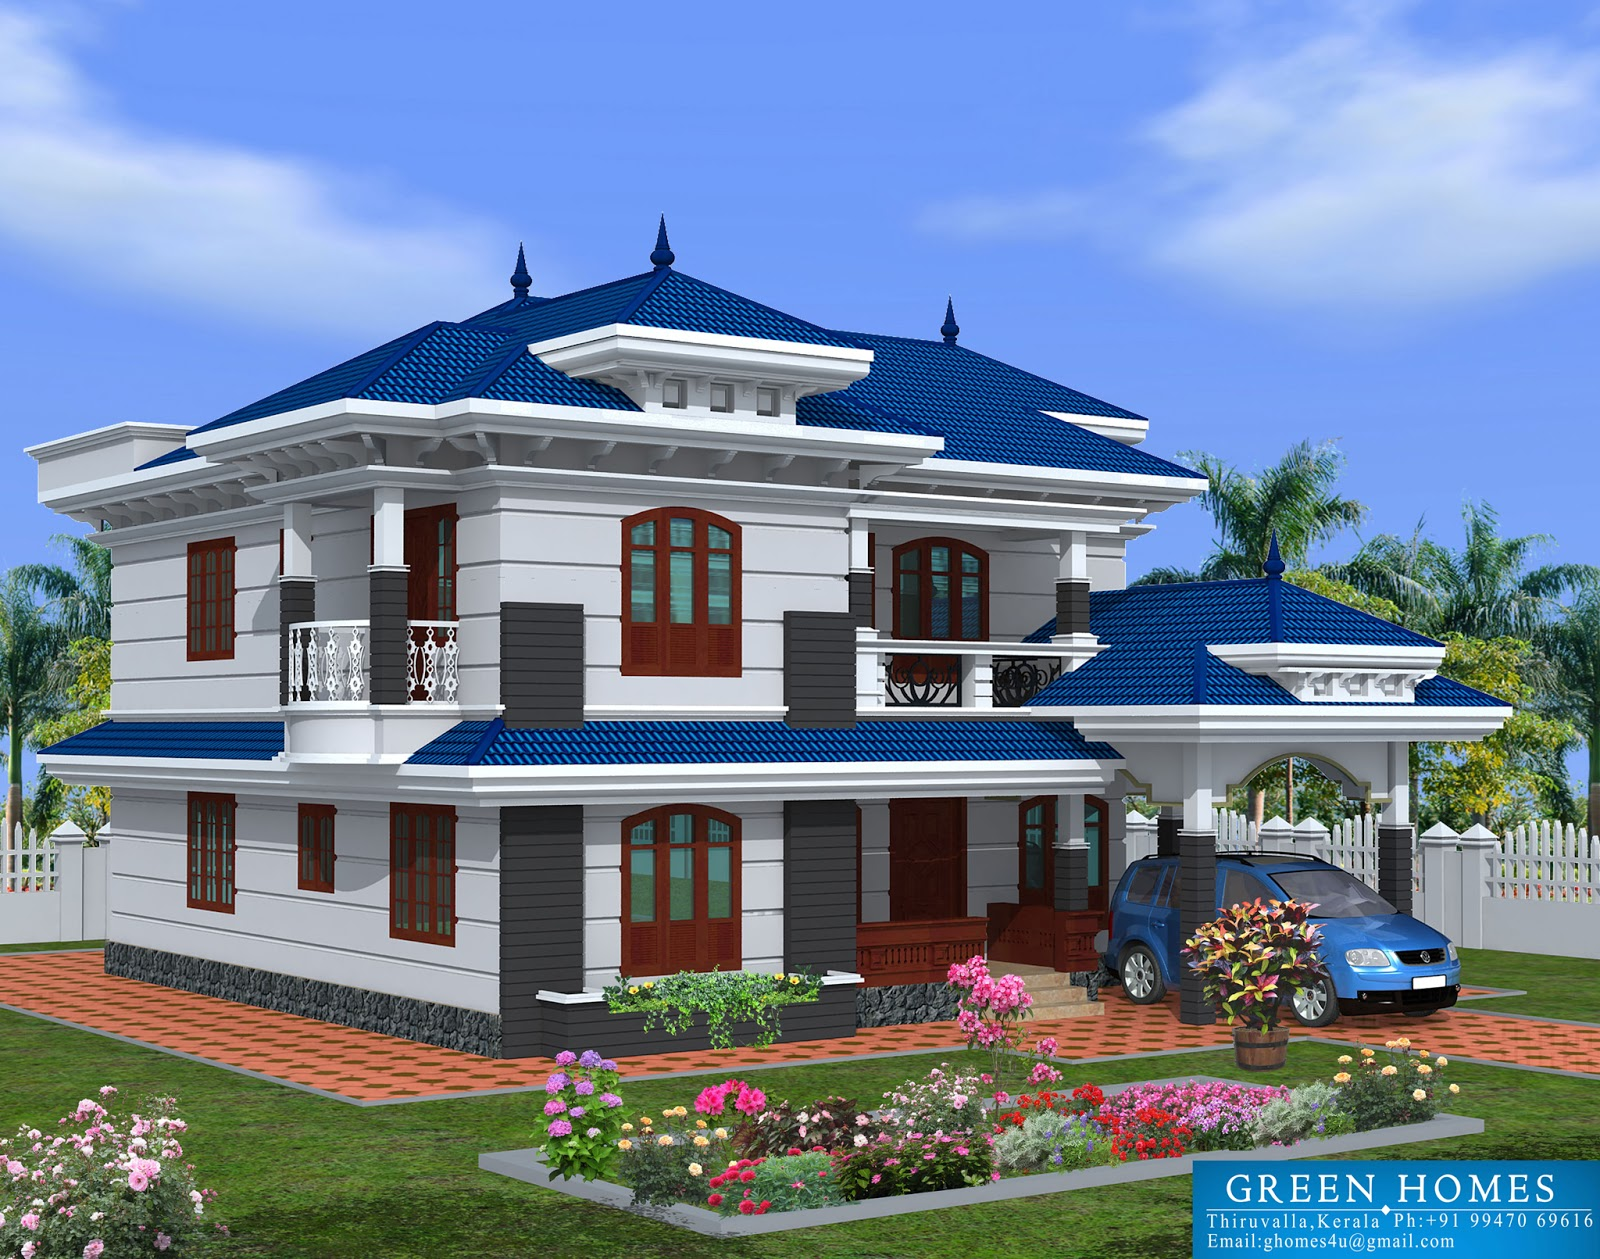 Green homes beautiful kerala home design for Design of building house